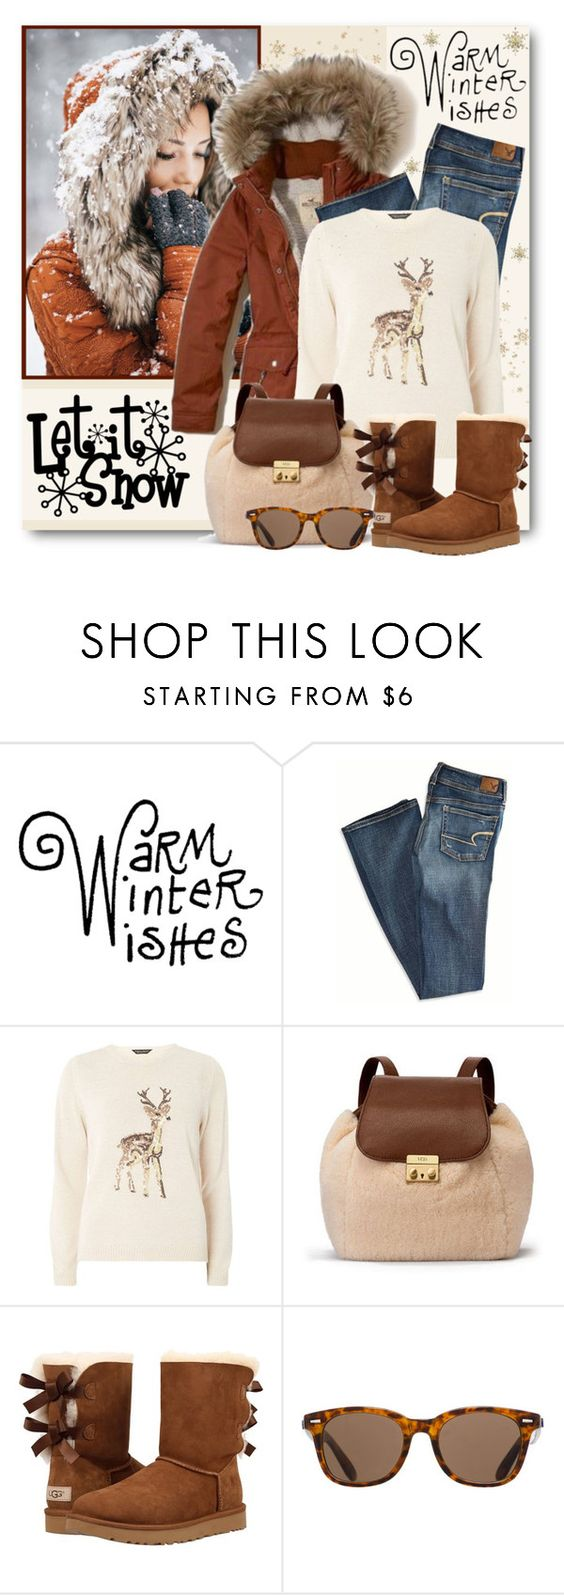 """""""Warm Winter Wishes"""" by brendariley-1 ❤ liked on Polyvore featuring American Eagle Outfitters, Dorothy Perkins, UGG and ToyShades"""